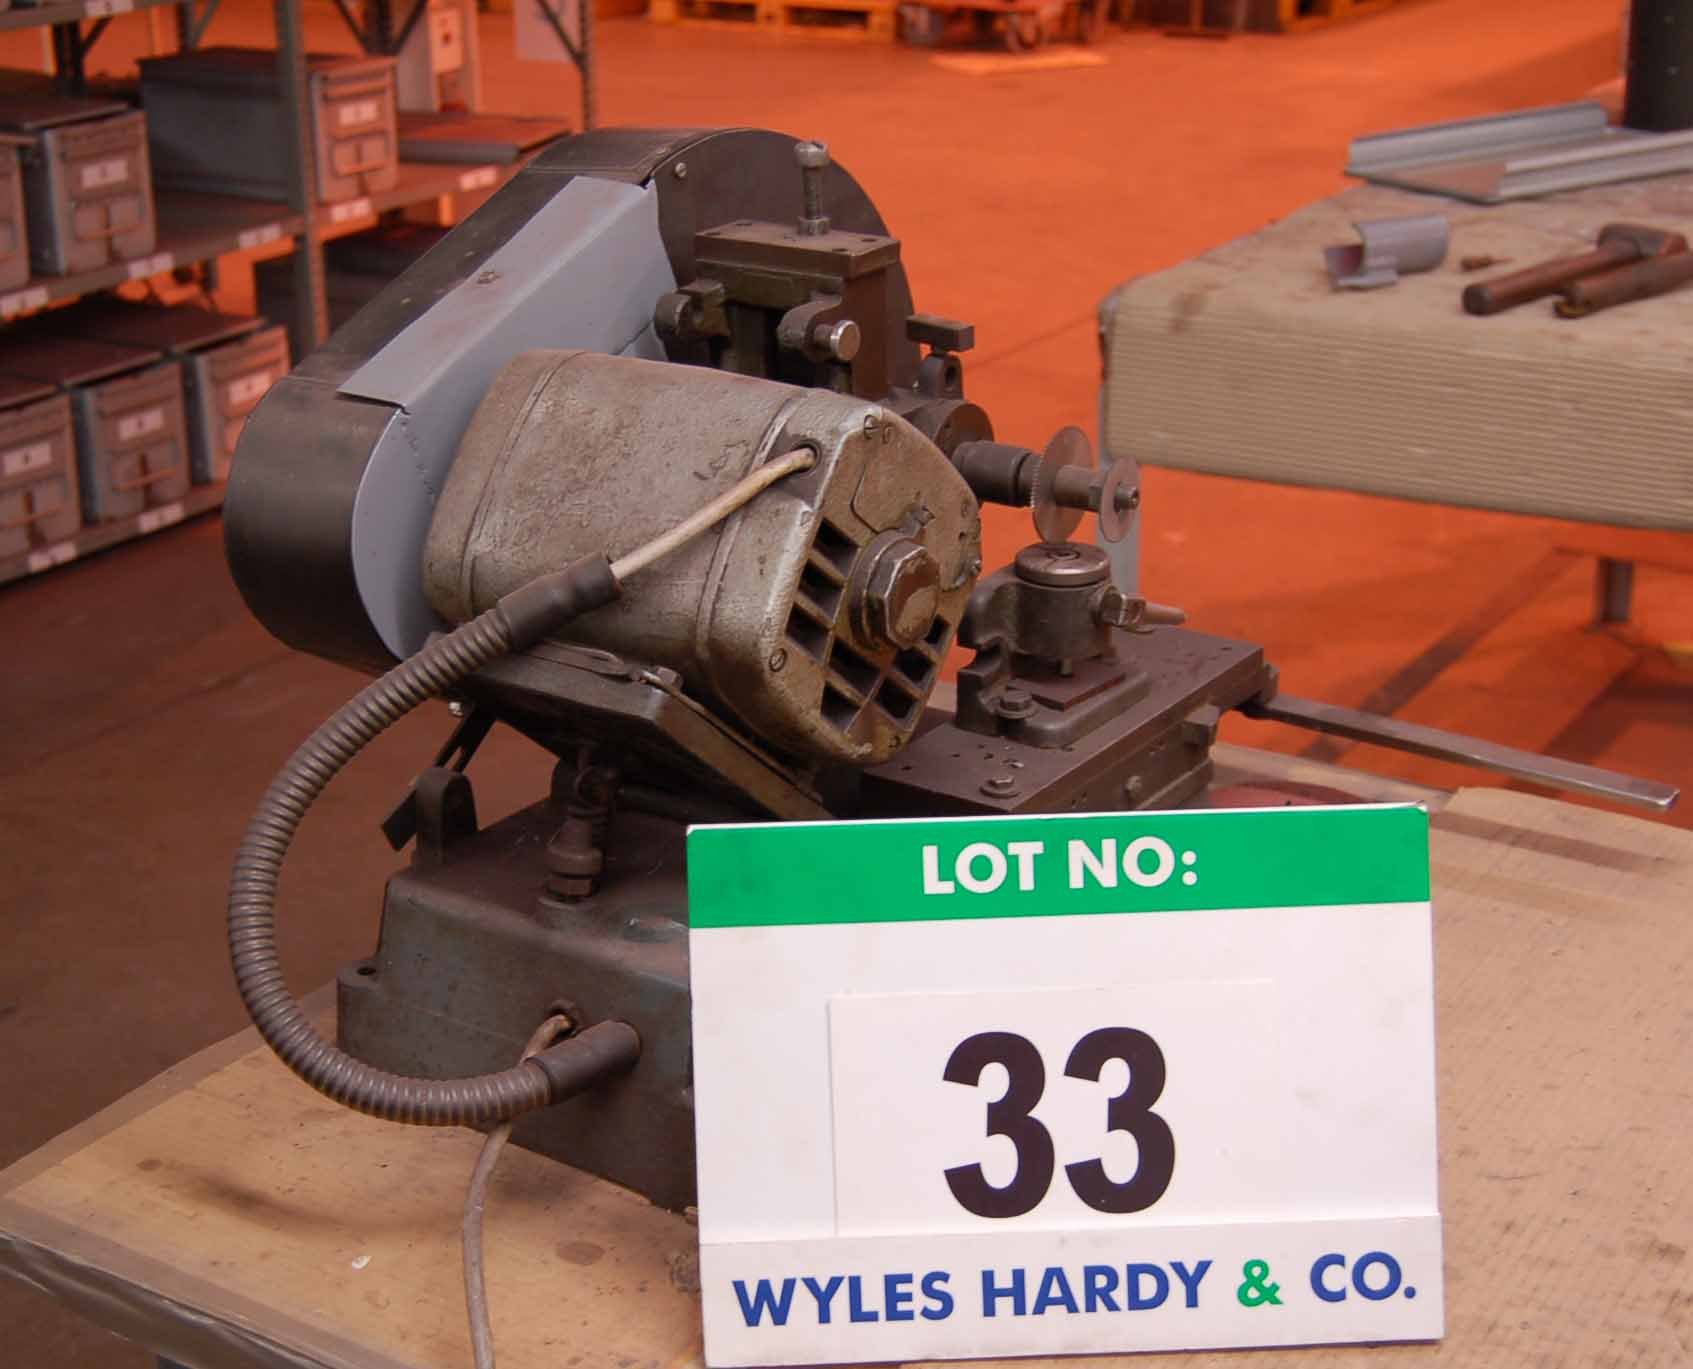 Lot 33 - ERMA, SEC OP MIL Bench top Mill Serial No. 1505 240V, (N.B. No Guards)